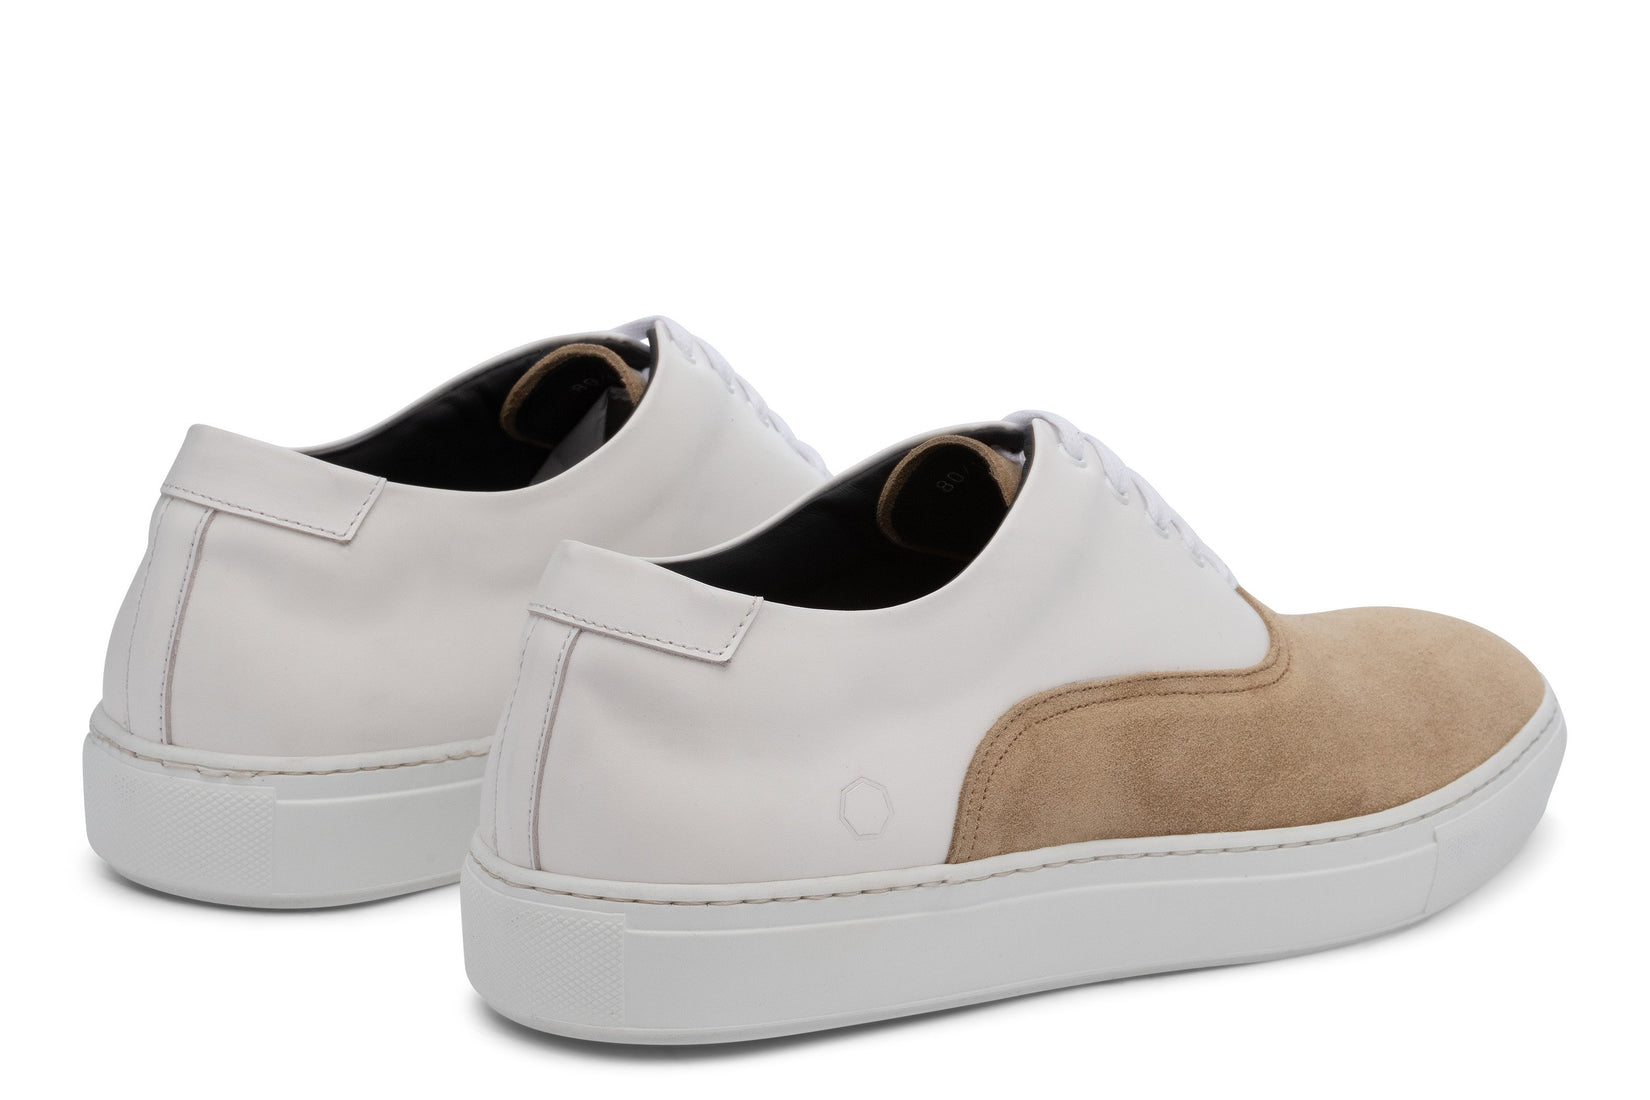 Sunday Two-Tone Skater Sneaker in White/Beige